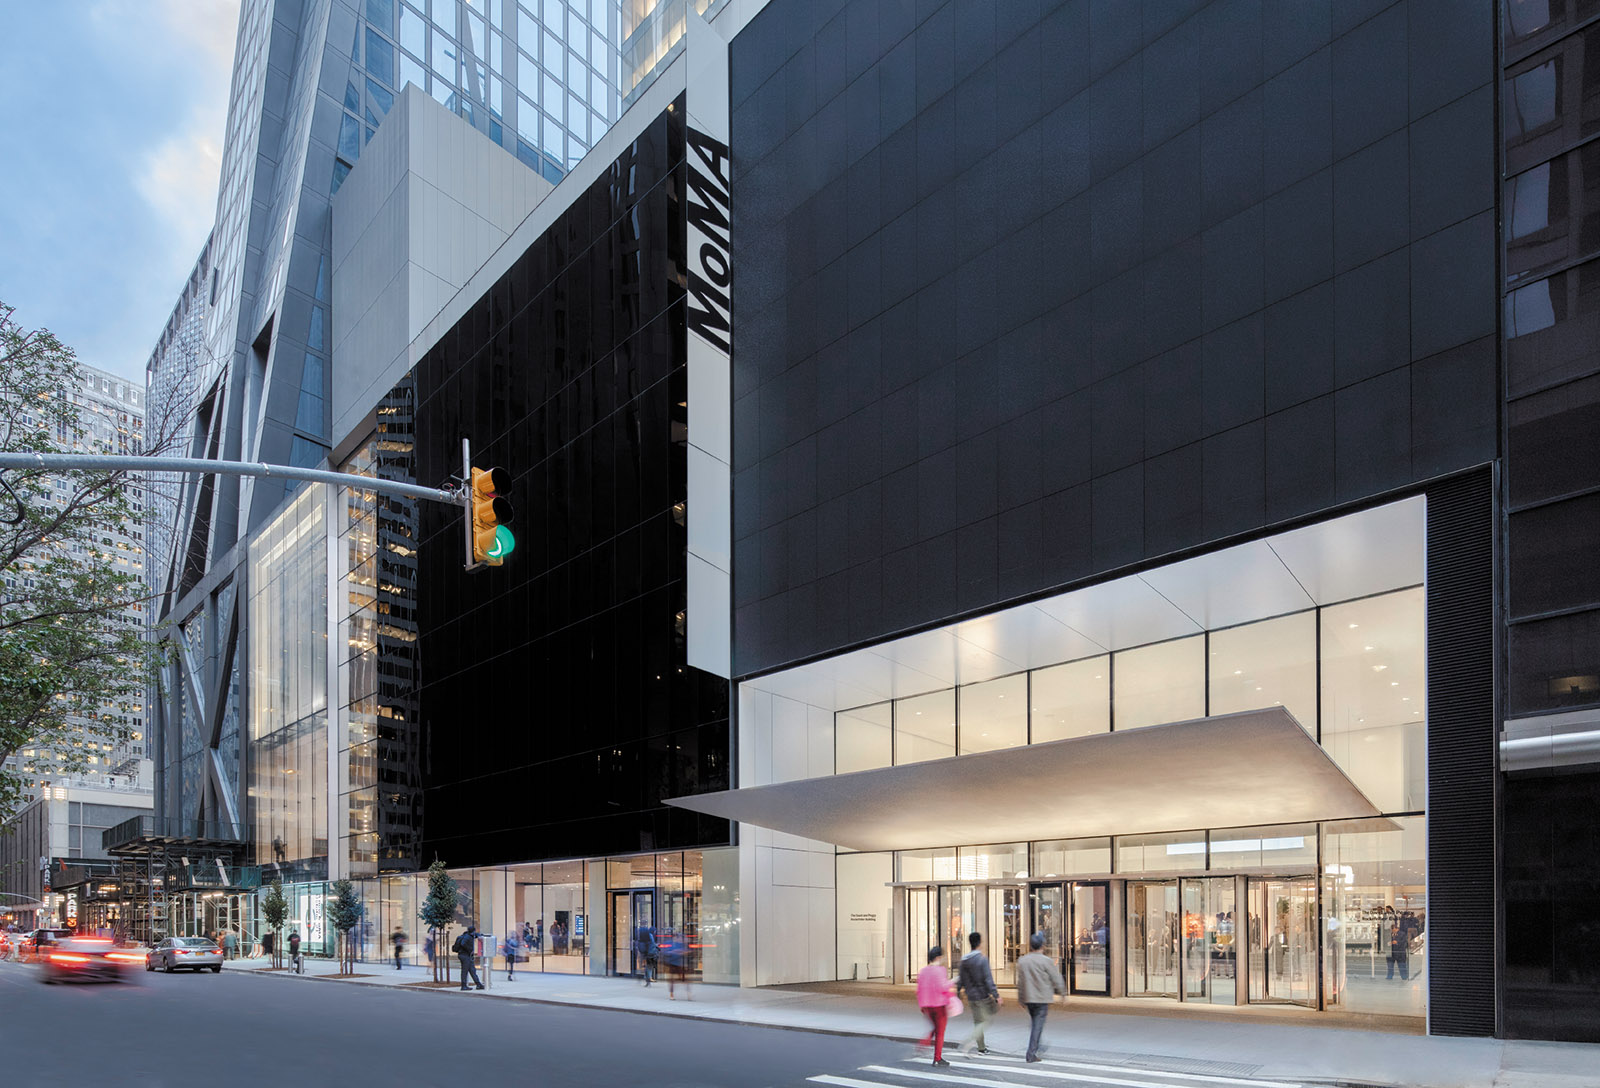 The exterior of the newly renovated MoMA